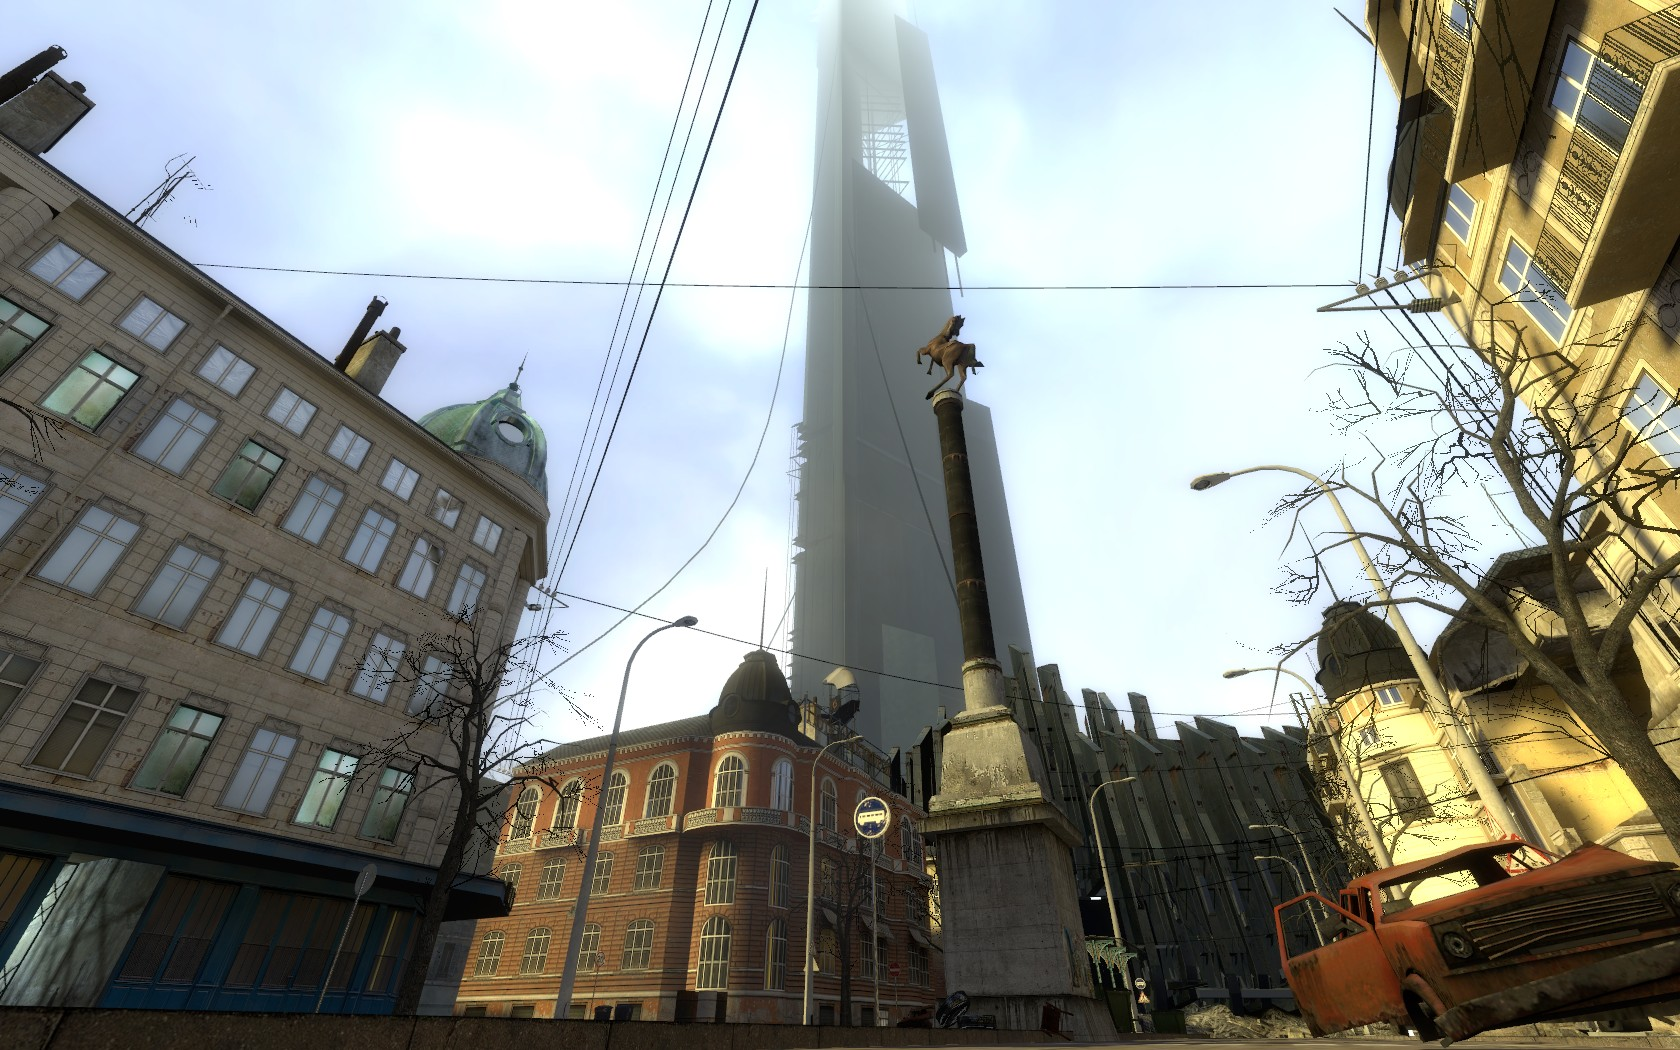 City 17 image - Missing Information mod for Half-Life 2 ... Raising The Bar